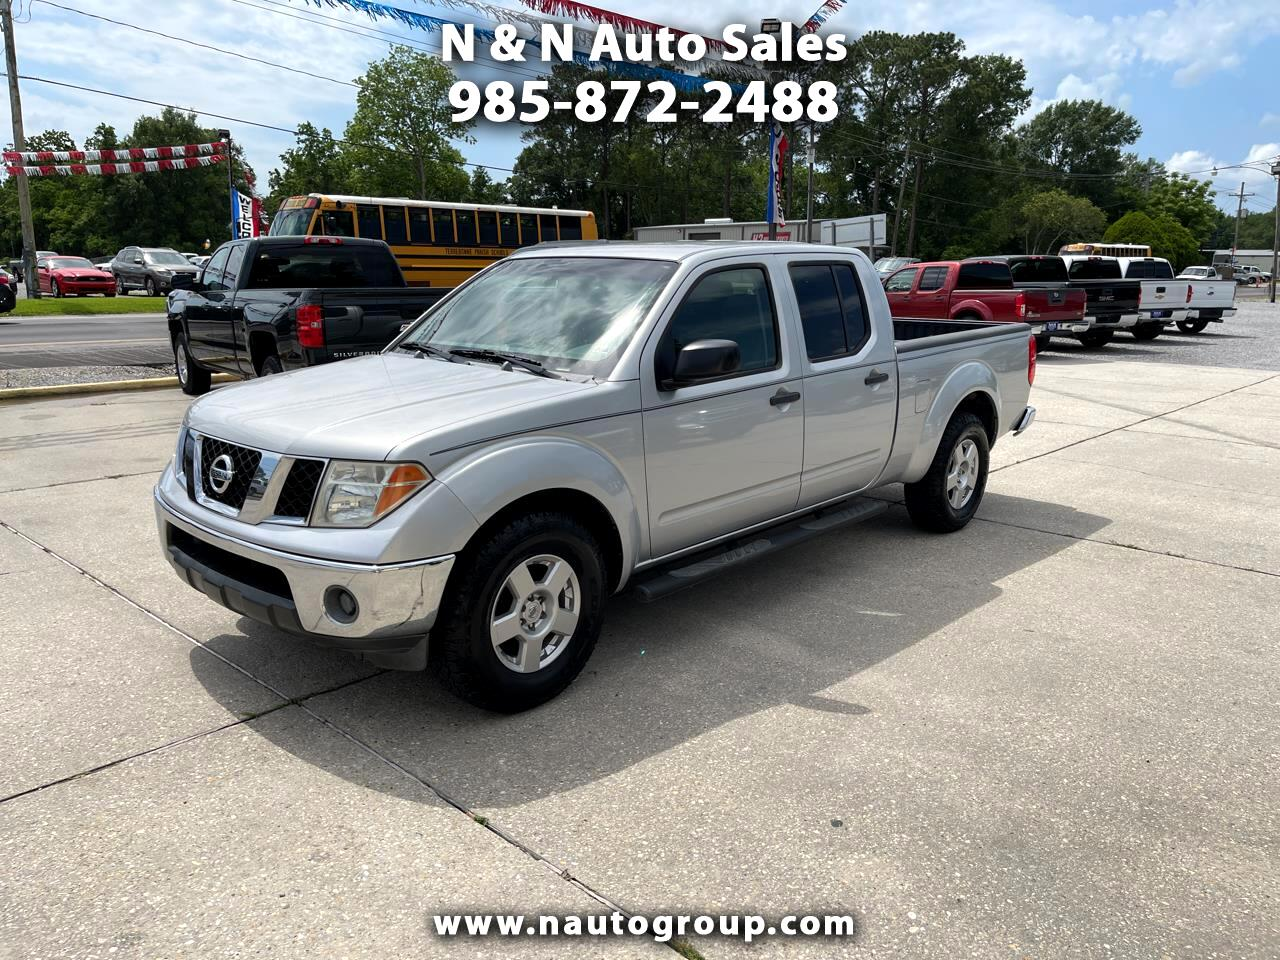 Nissan Frontier SE Crew Cab Long Bed 2WD 2007